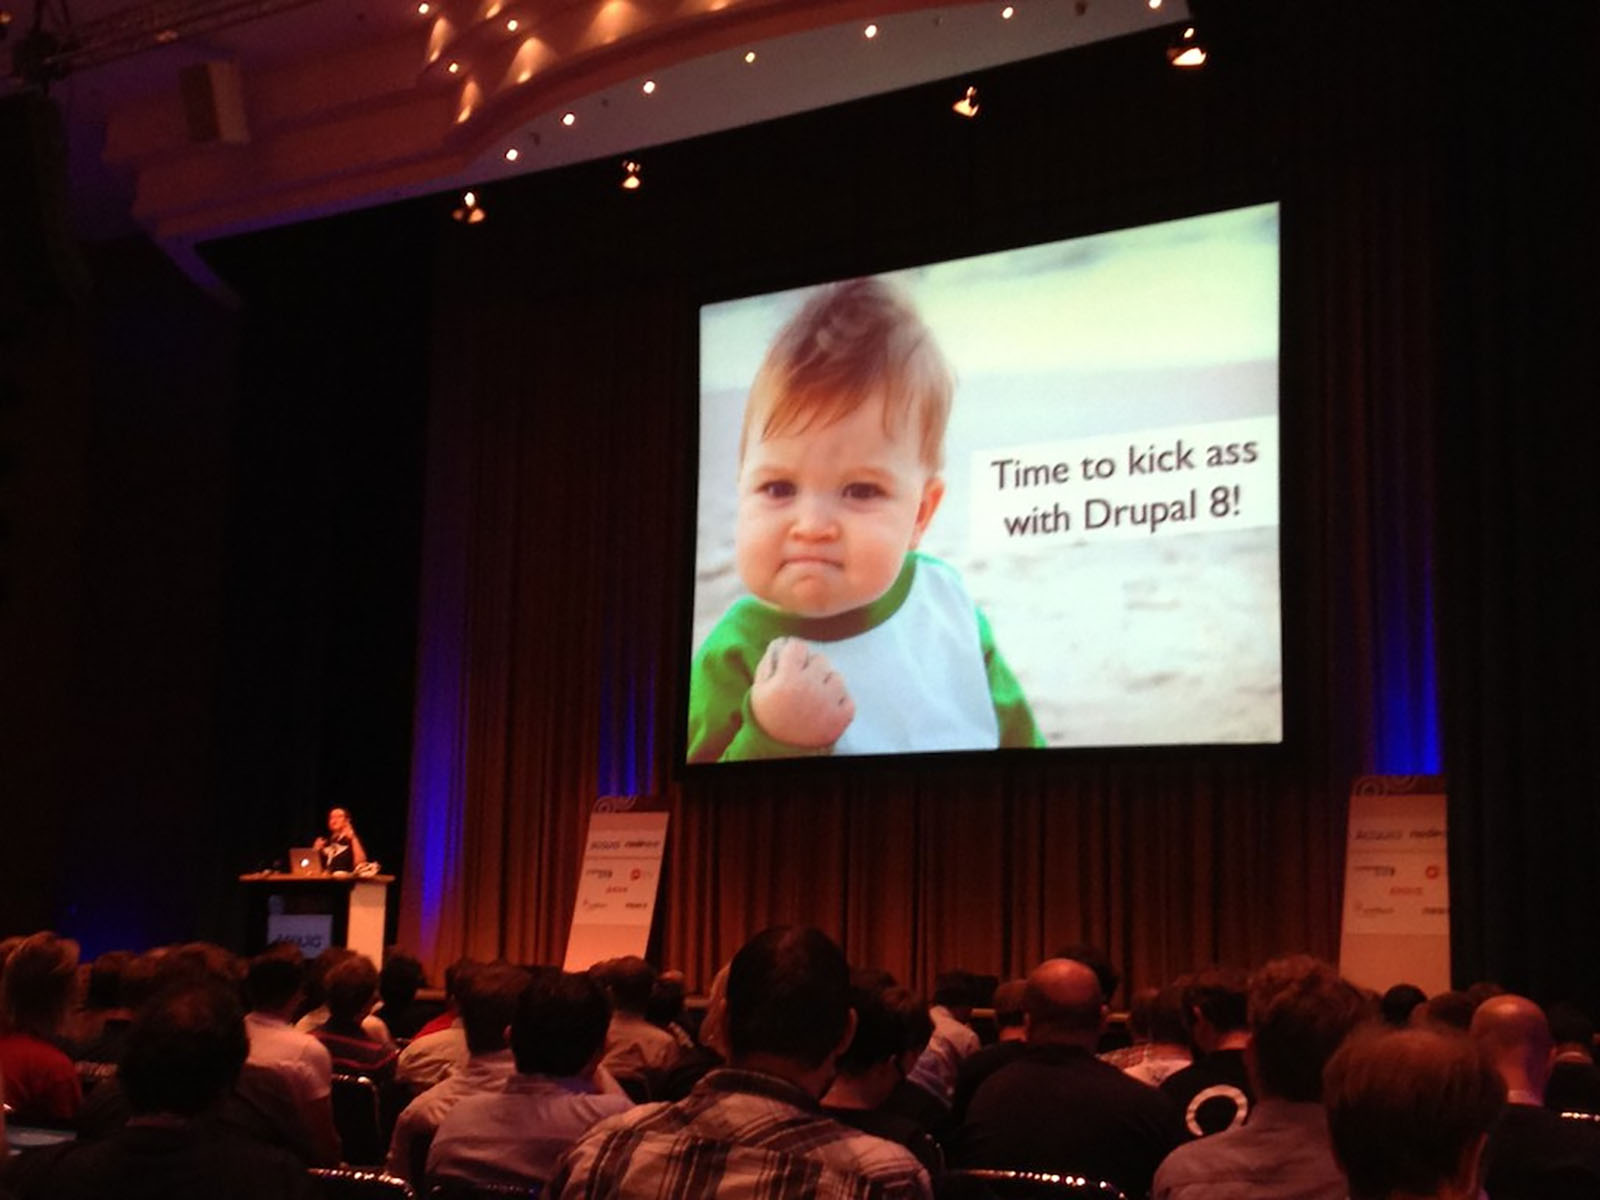 A humourous keynote slide from a DrupalCon. The slide shows a toddler clenching a fist and some wording saying 'Time to kick ass with Drupal 8'